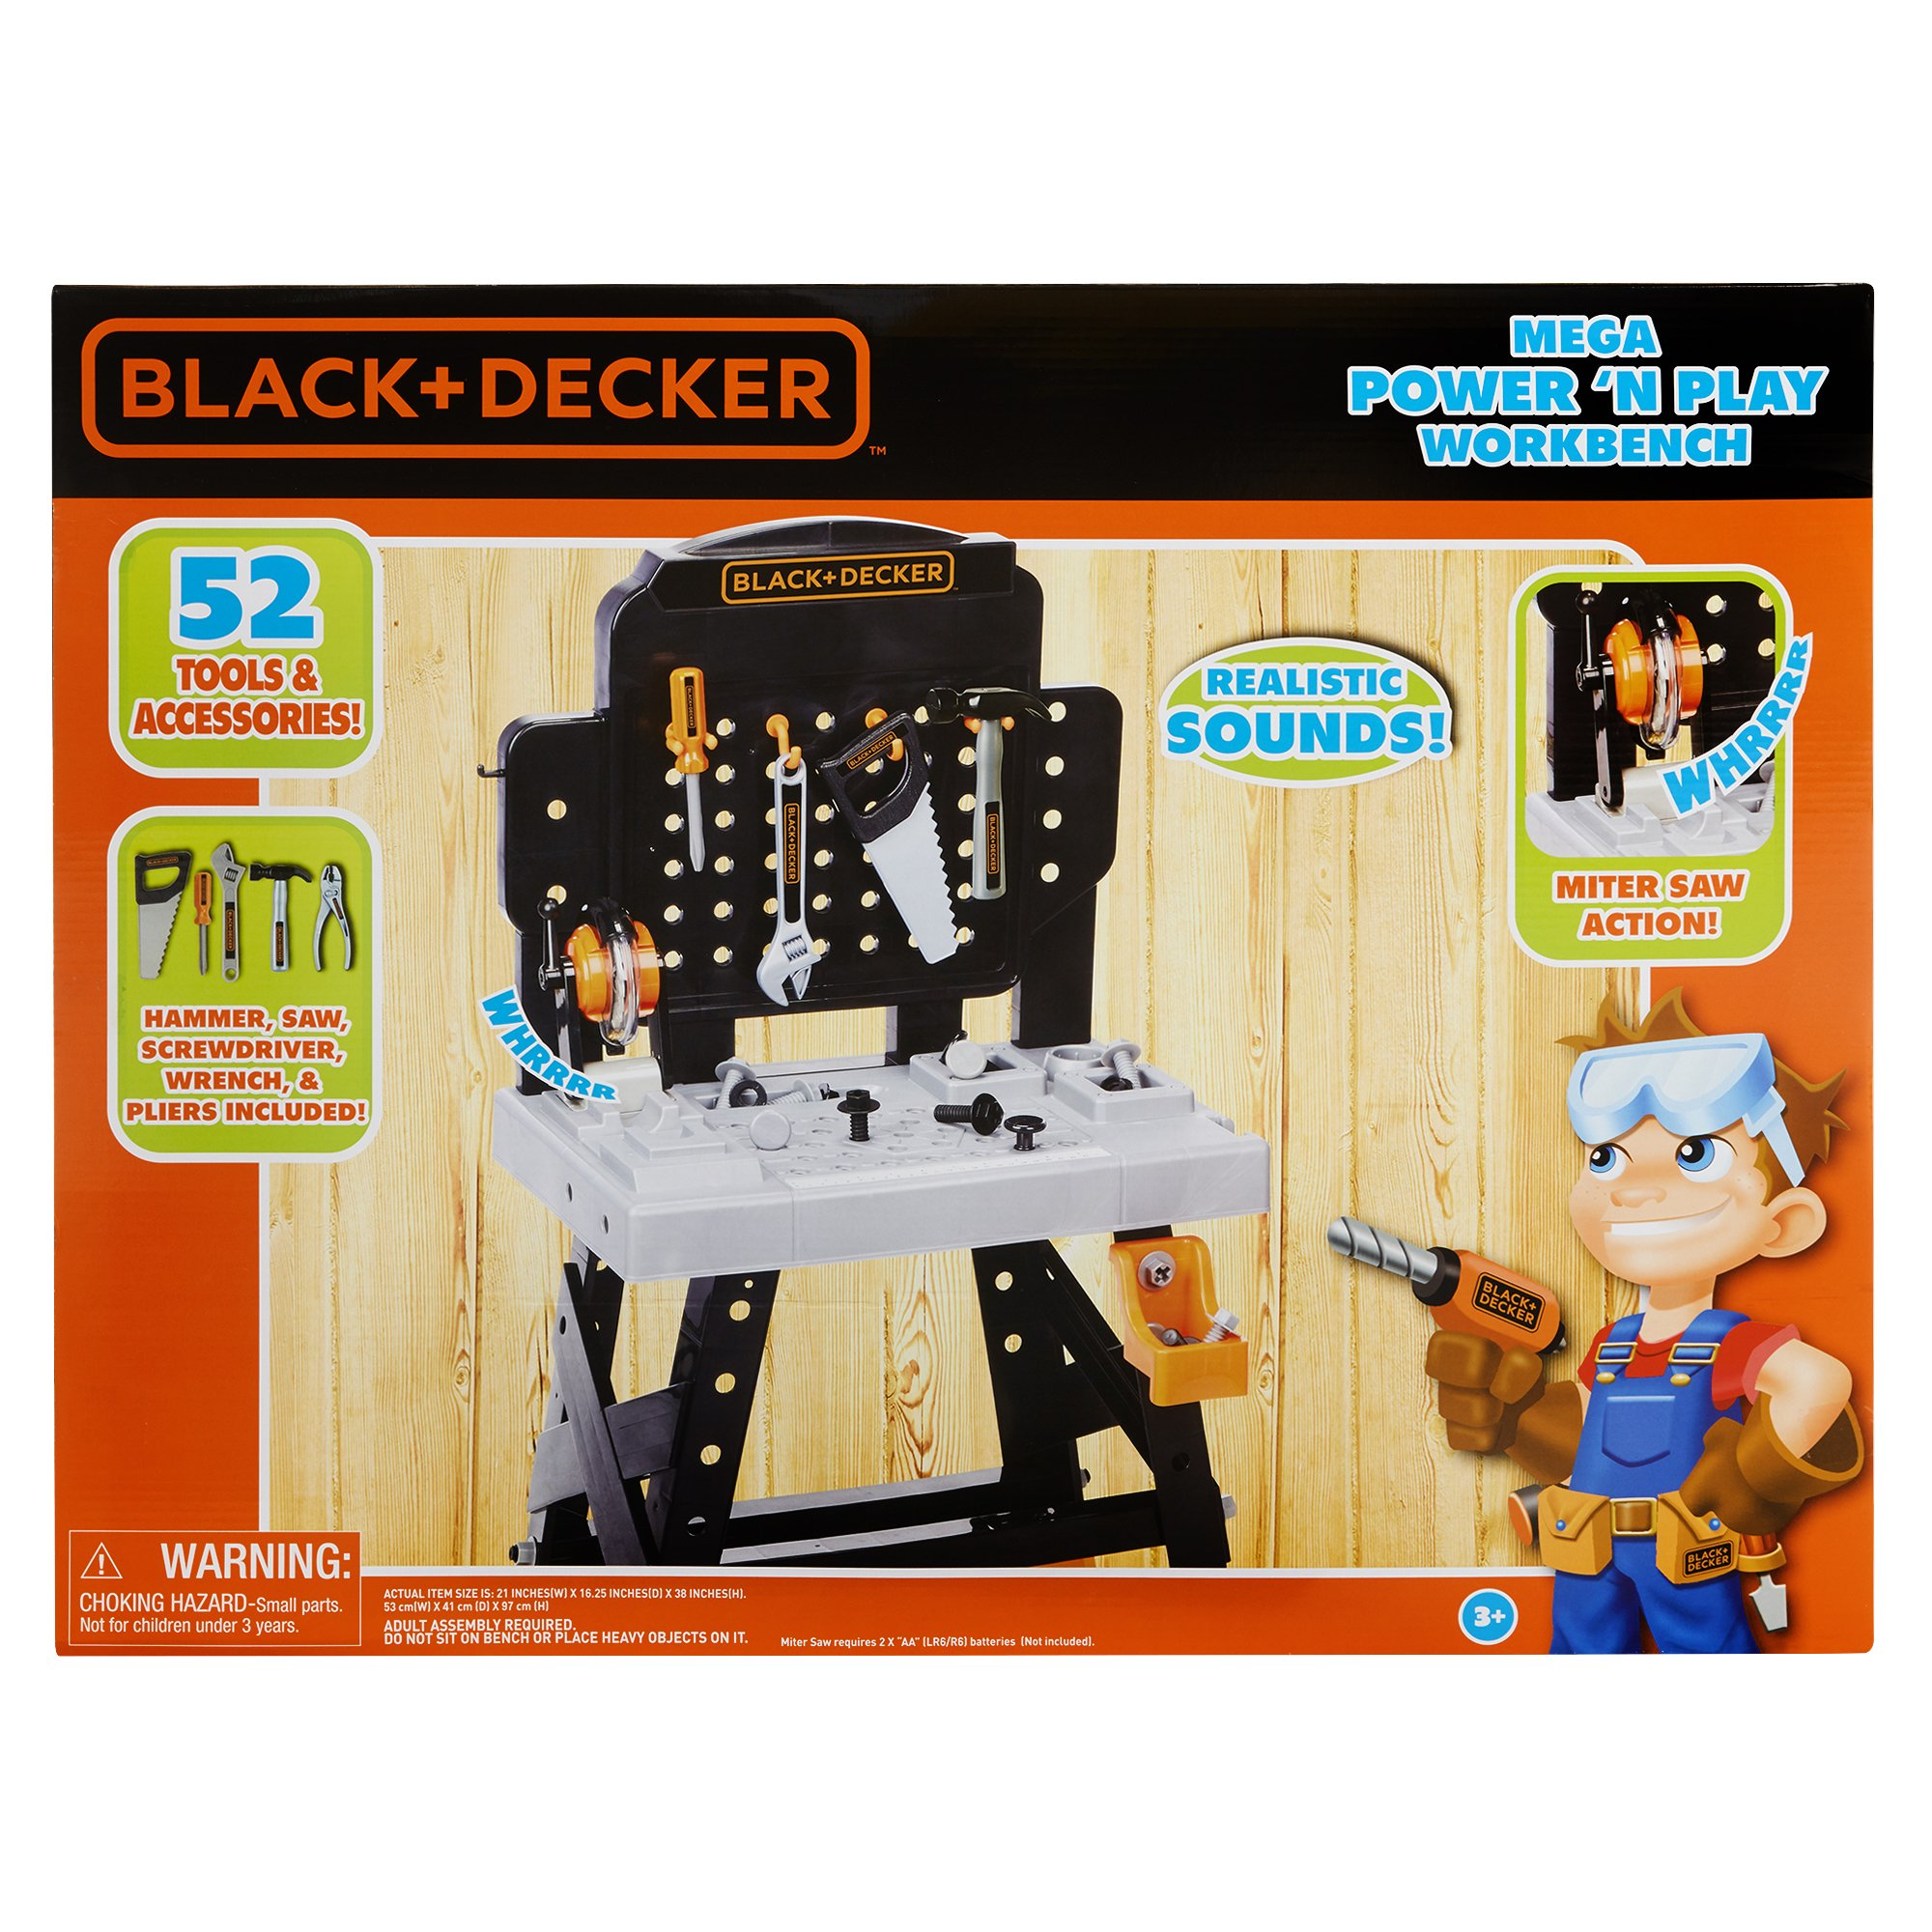 BLACK+DECKER 71382 Jr. Mega Power N' Play Workbench with Realistic Sounds! - 52 Tools & Accessories by BLACK+DECKER (Image #7)